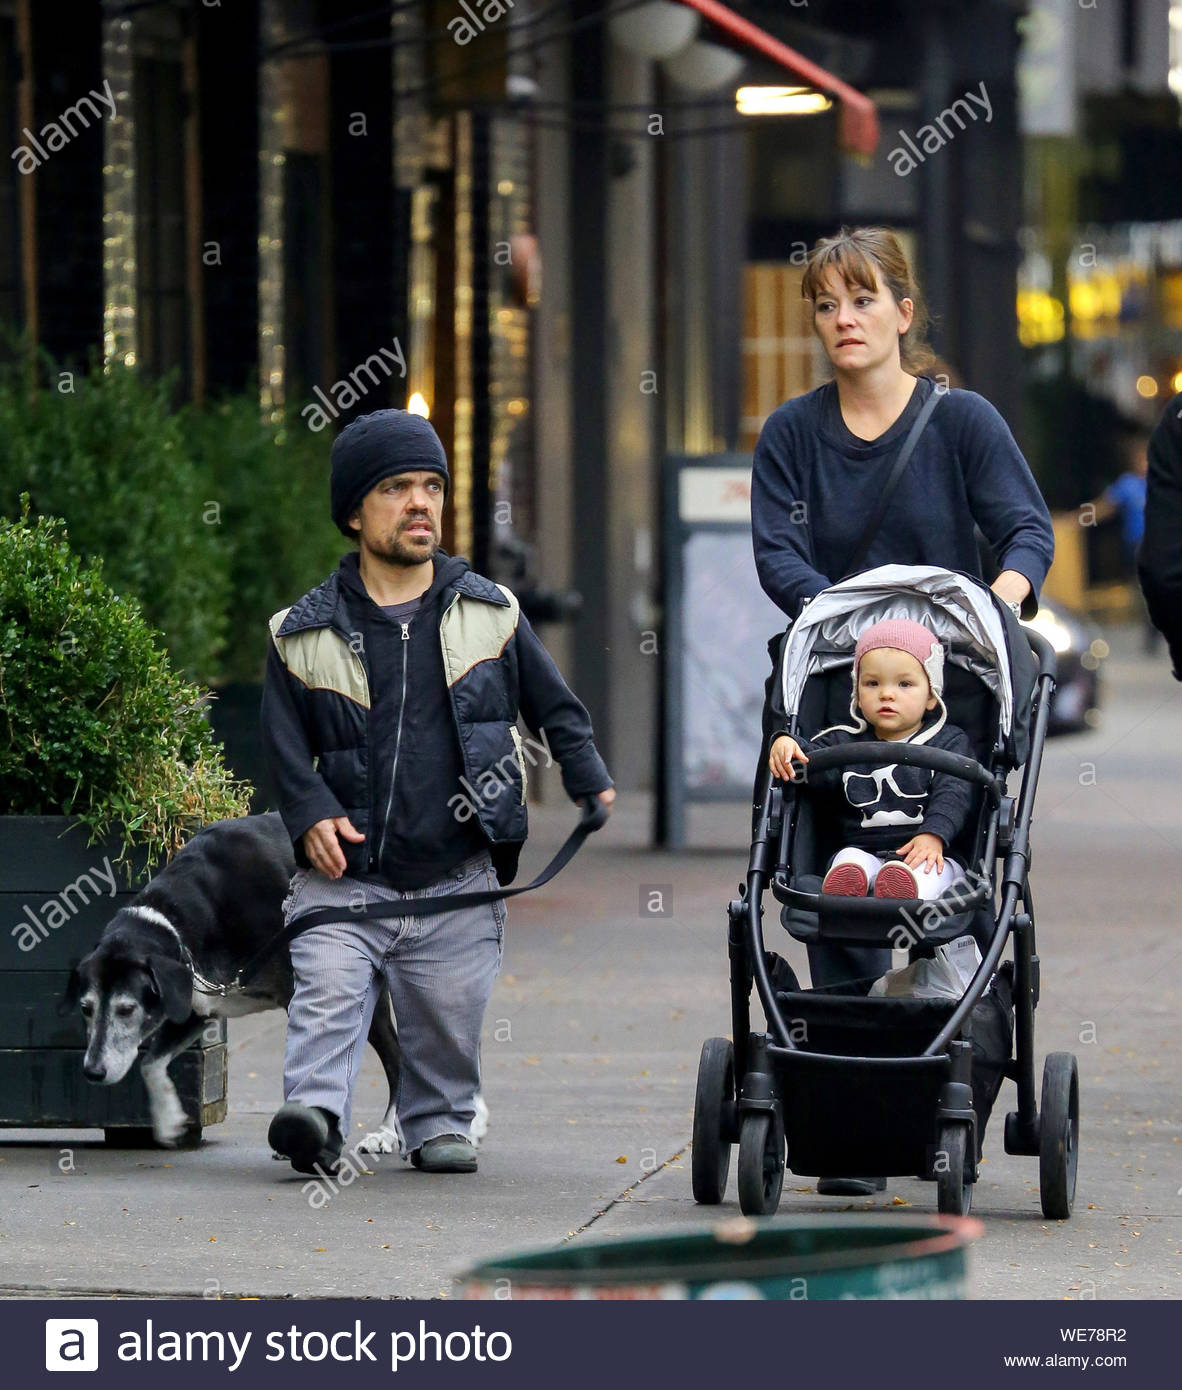 New York Ny Peter Dinklage And Wife Erica Schmidt Take Their Daughter Zelig Dinklage And The Family Dog Out For Stroll On A Halloween Day In New York City Akm Gsi October